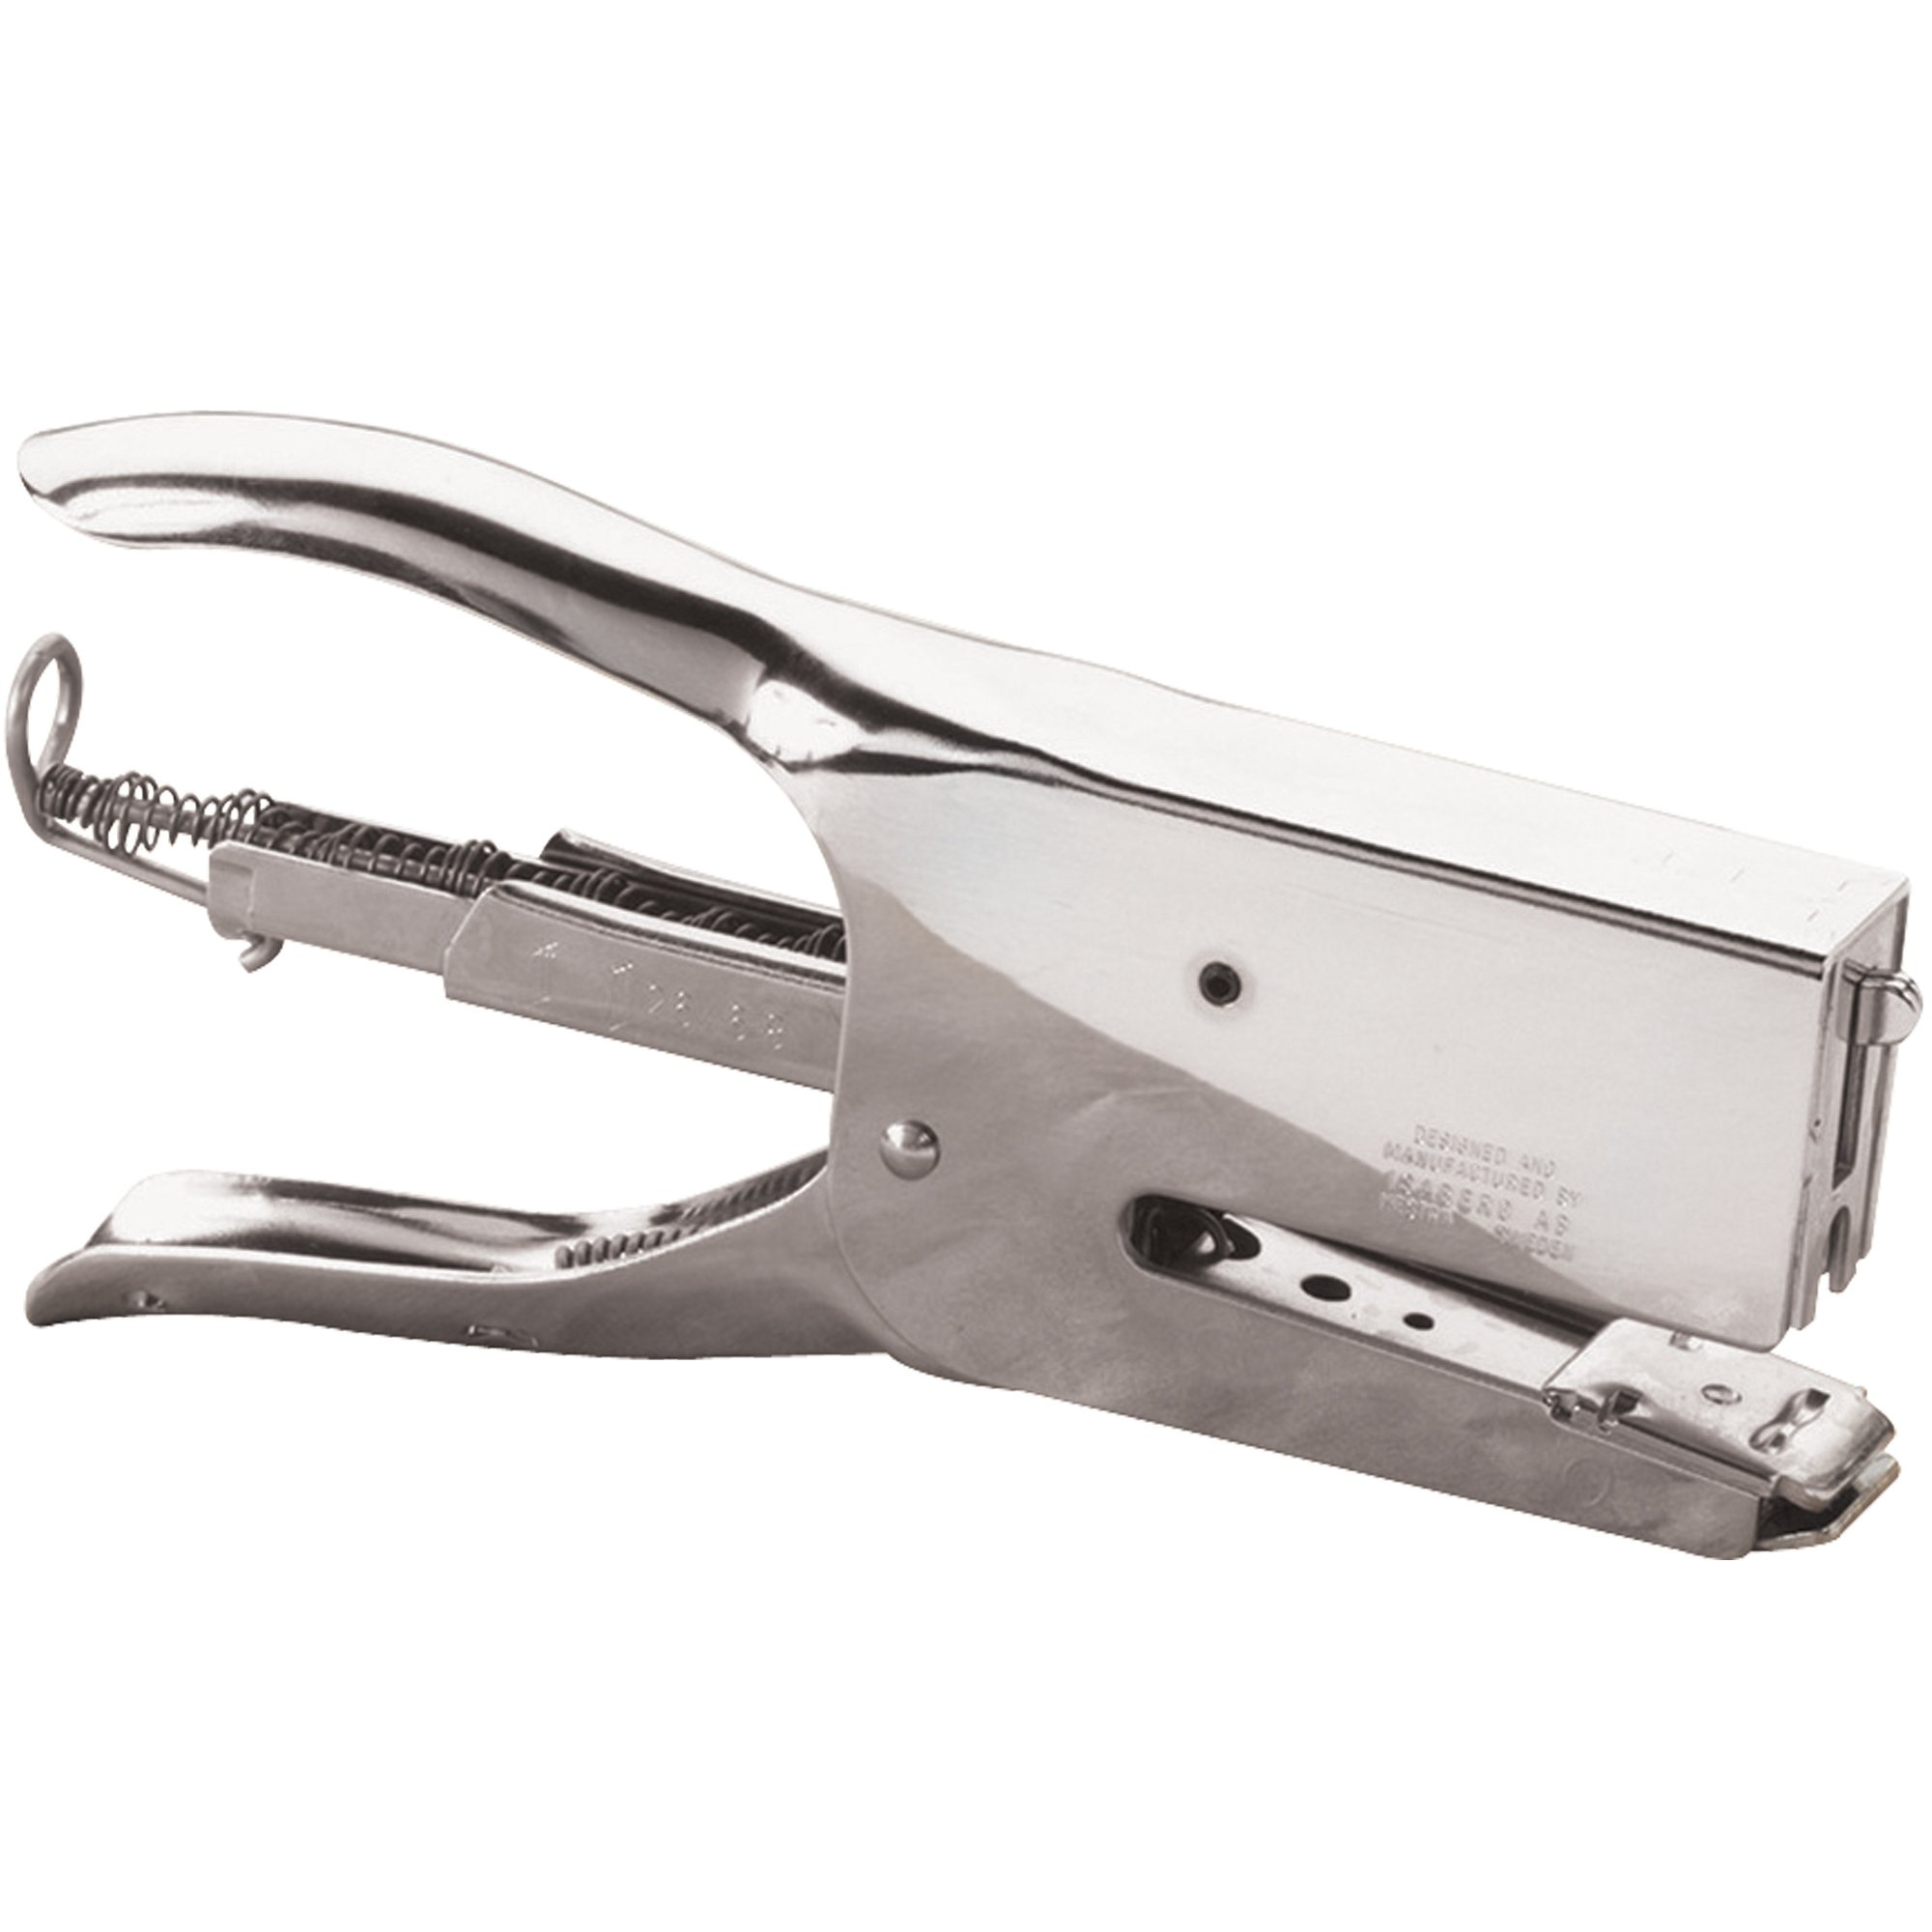 Boxes Fast Economy Hand Stapler, Silver, (Pack of 1) by Boxes Fast